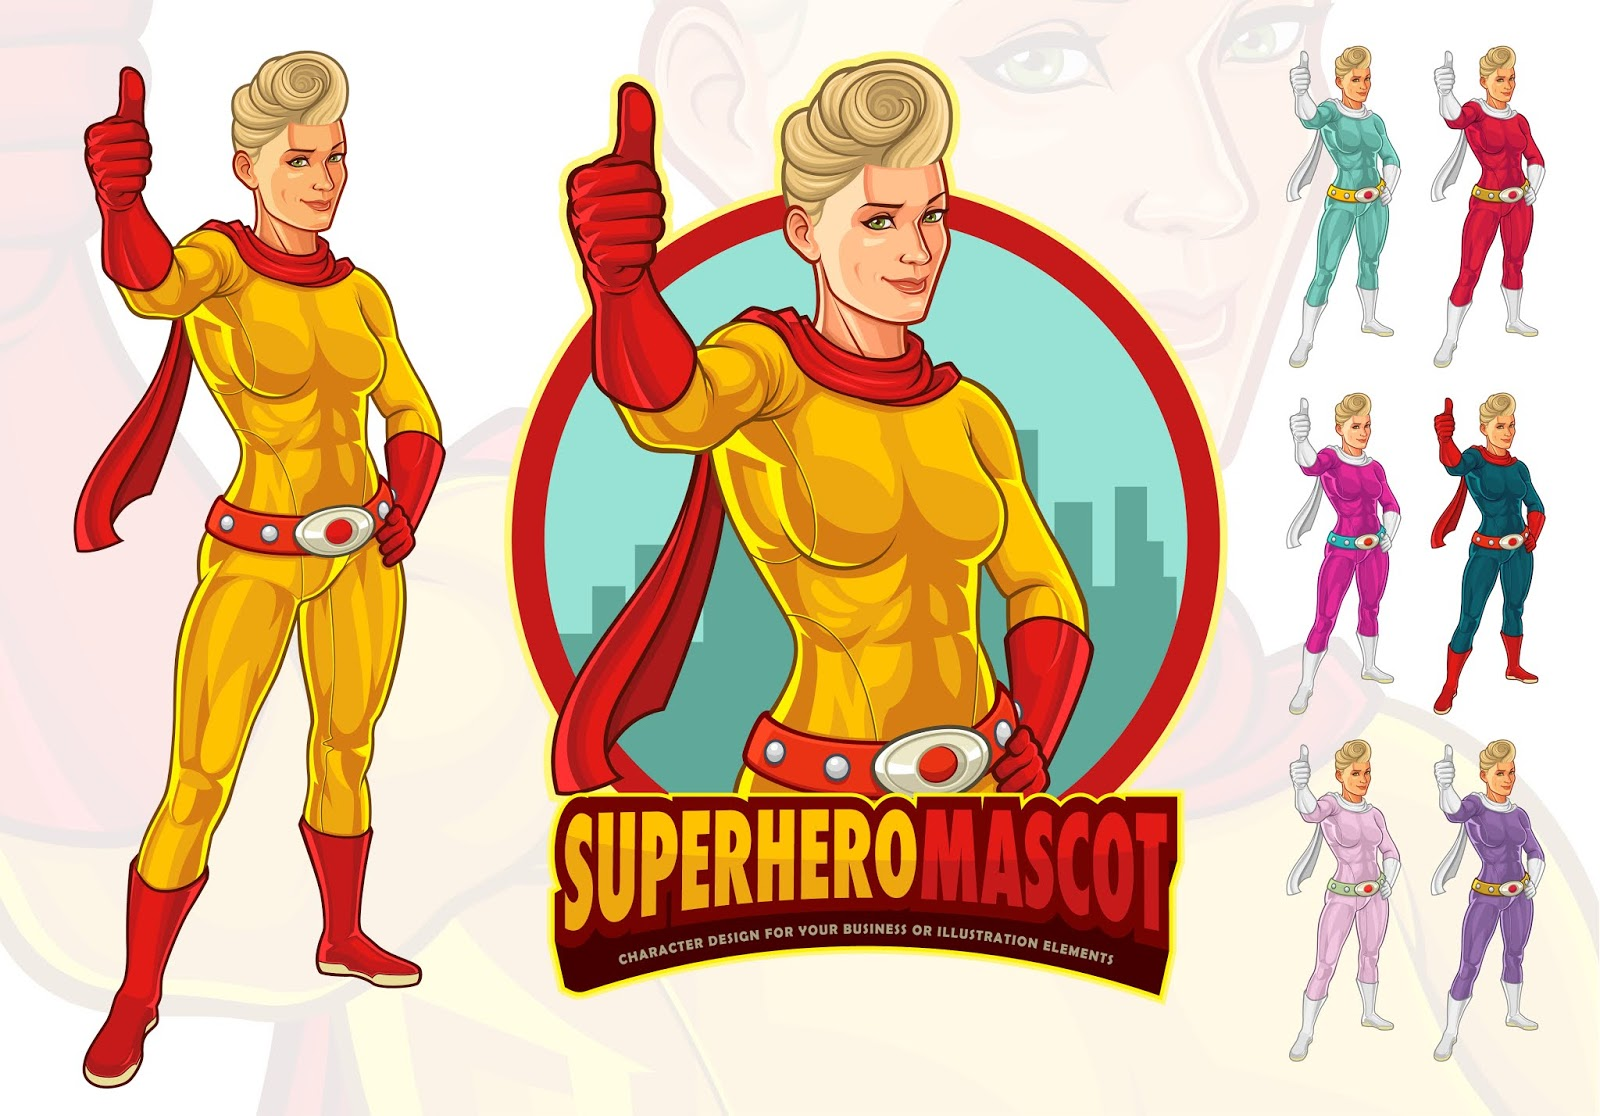 Female Superhero Mascot Company Free Download Vector CDR, AI, EPS and PNG Formats